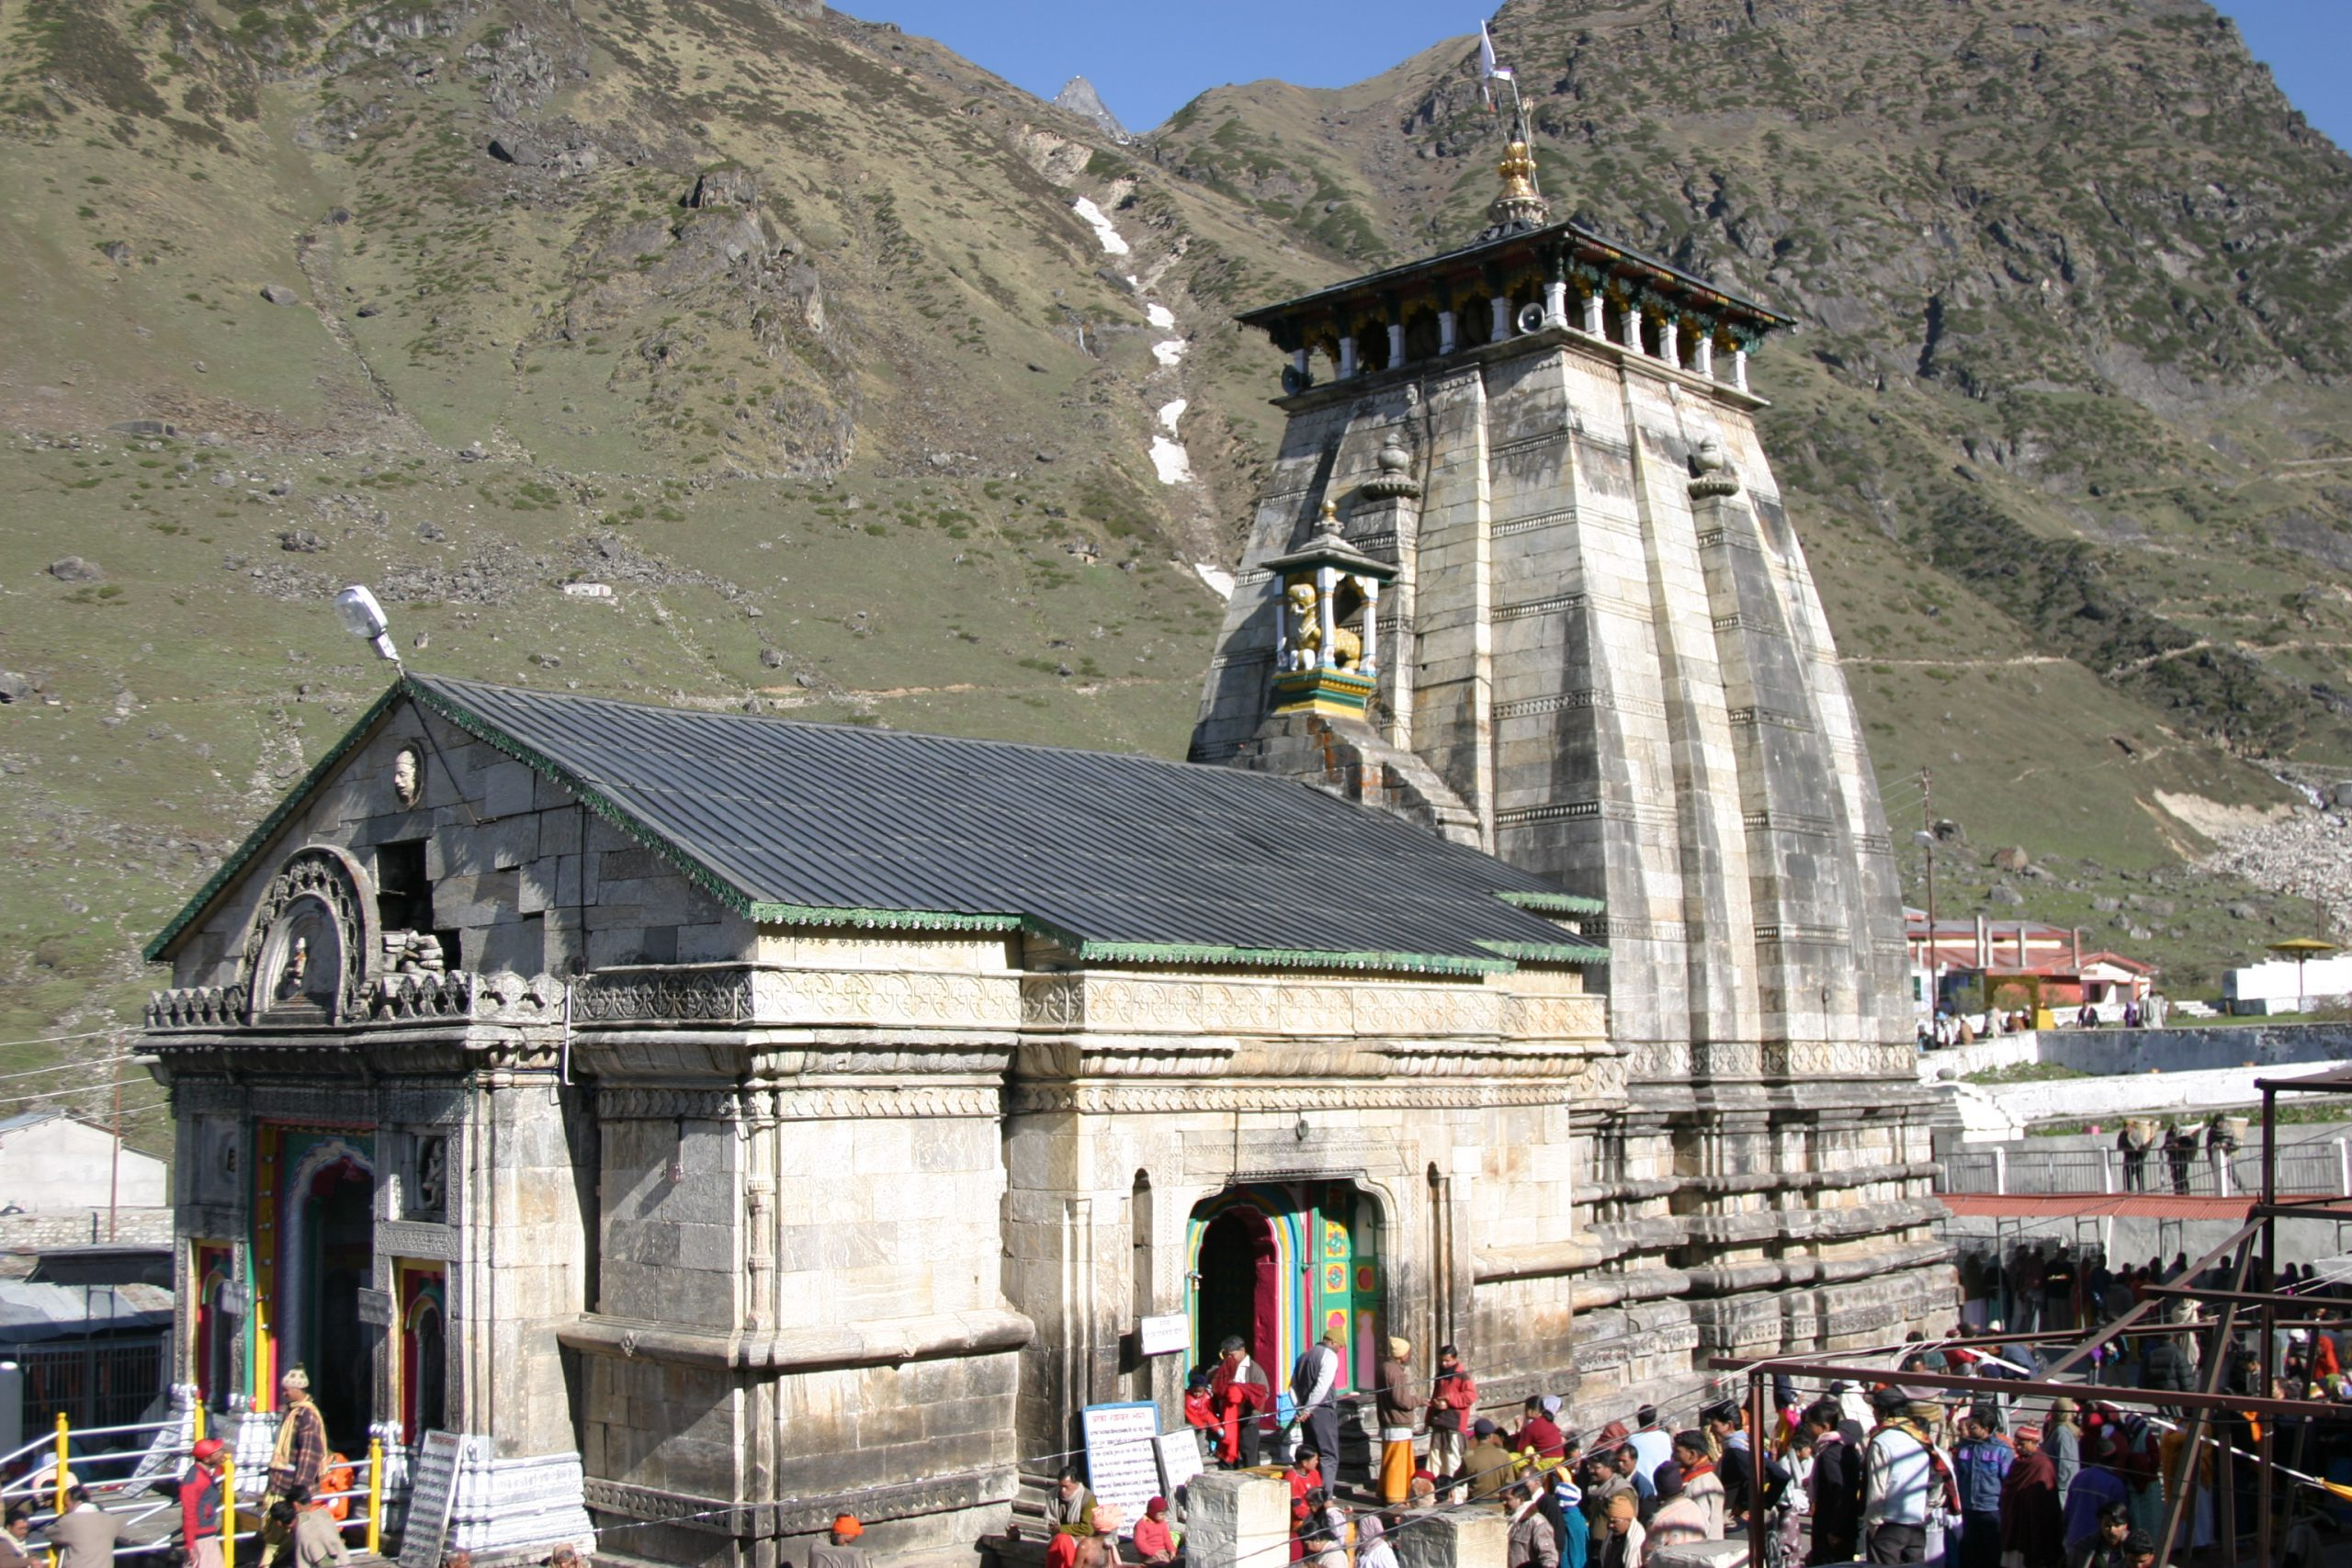 Importance of Kedarnath Temple